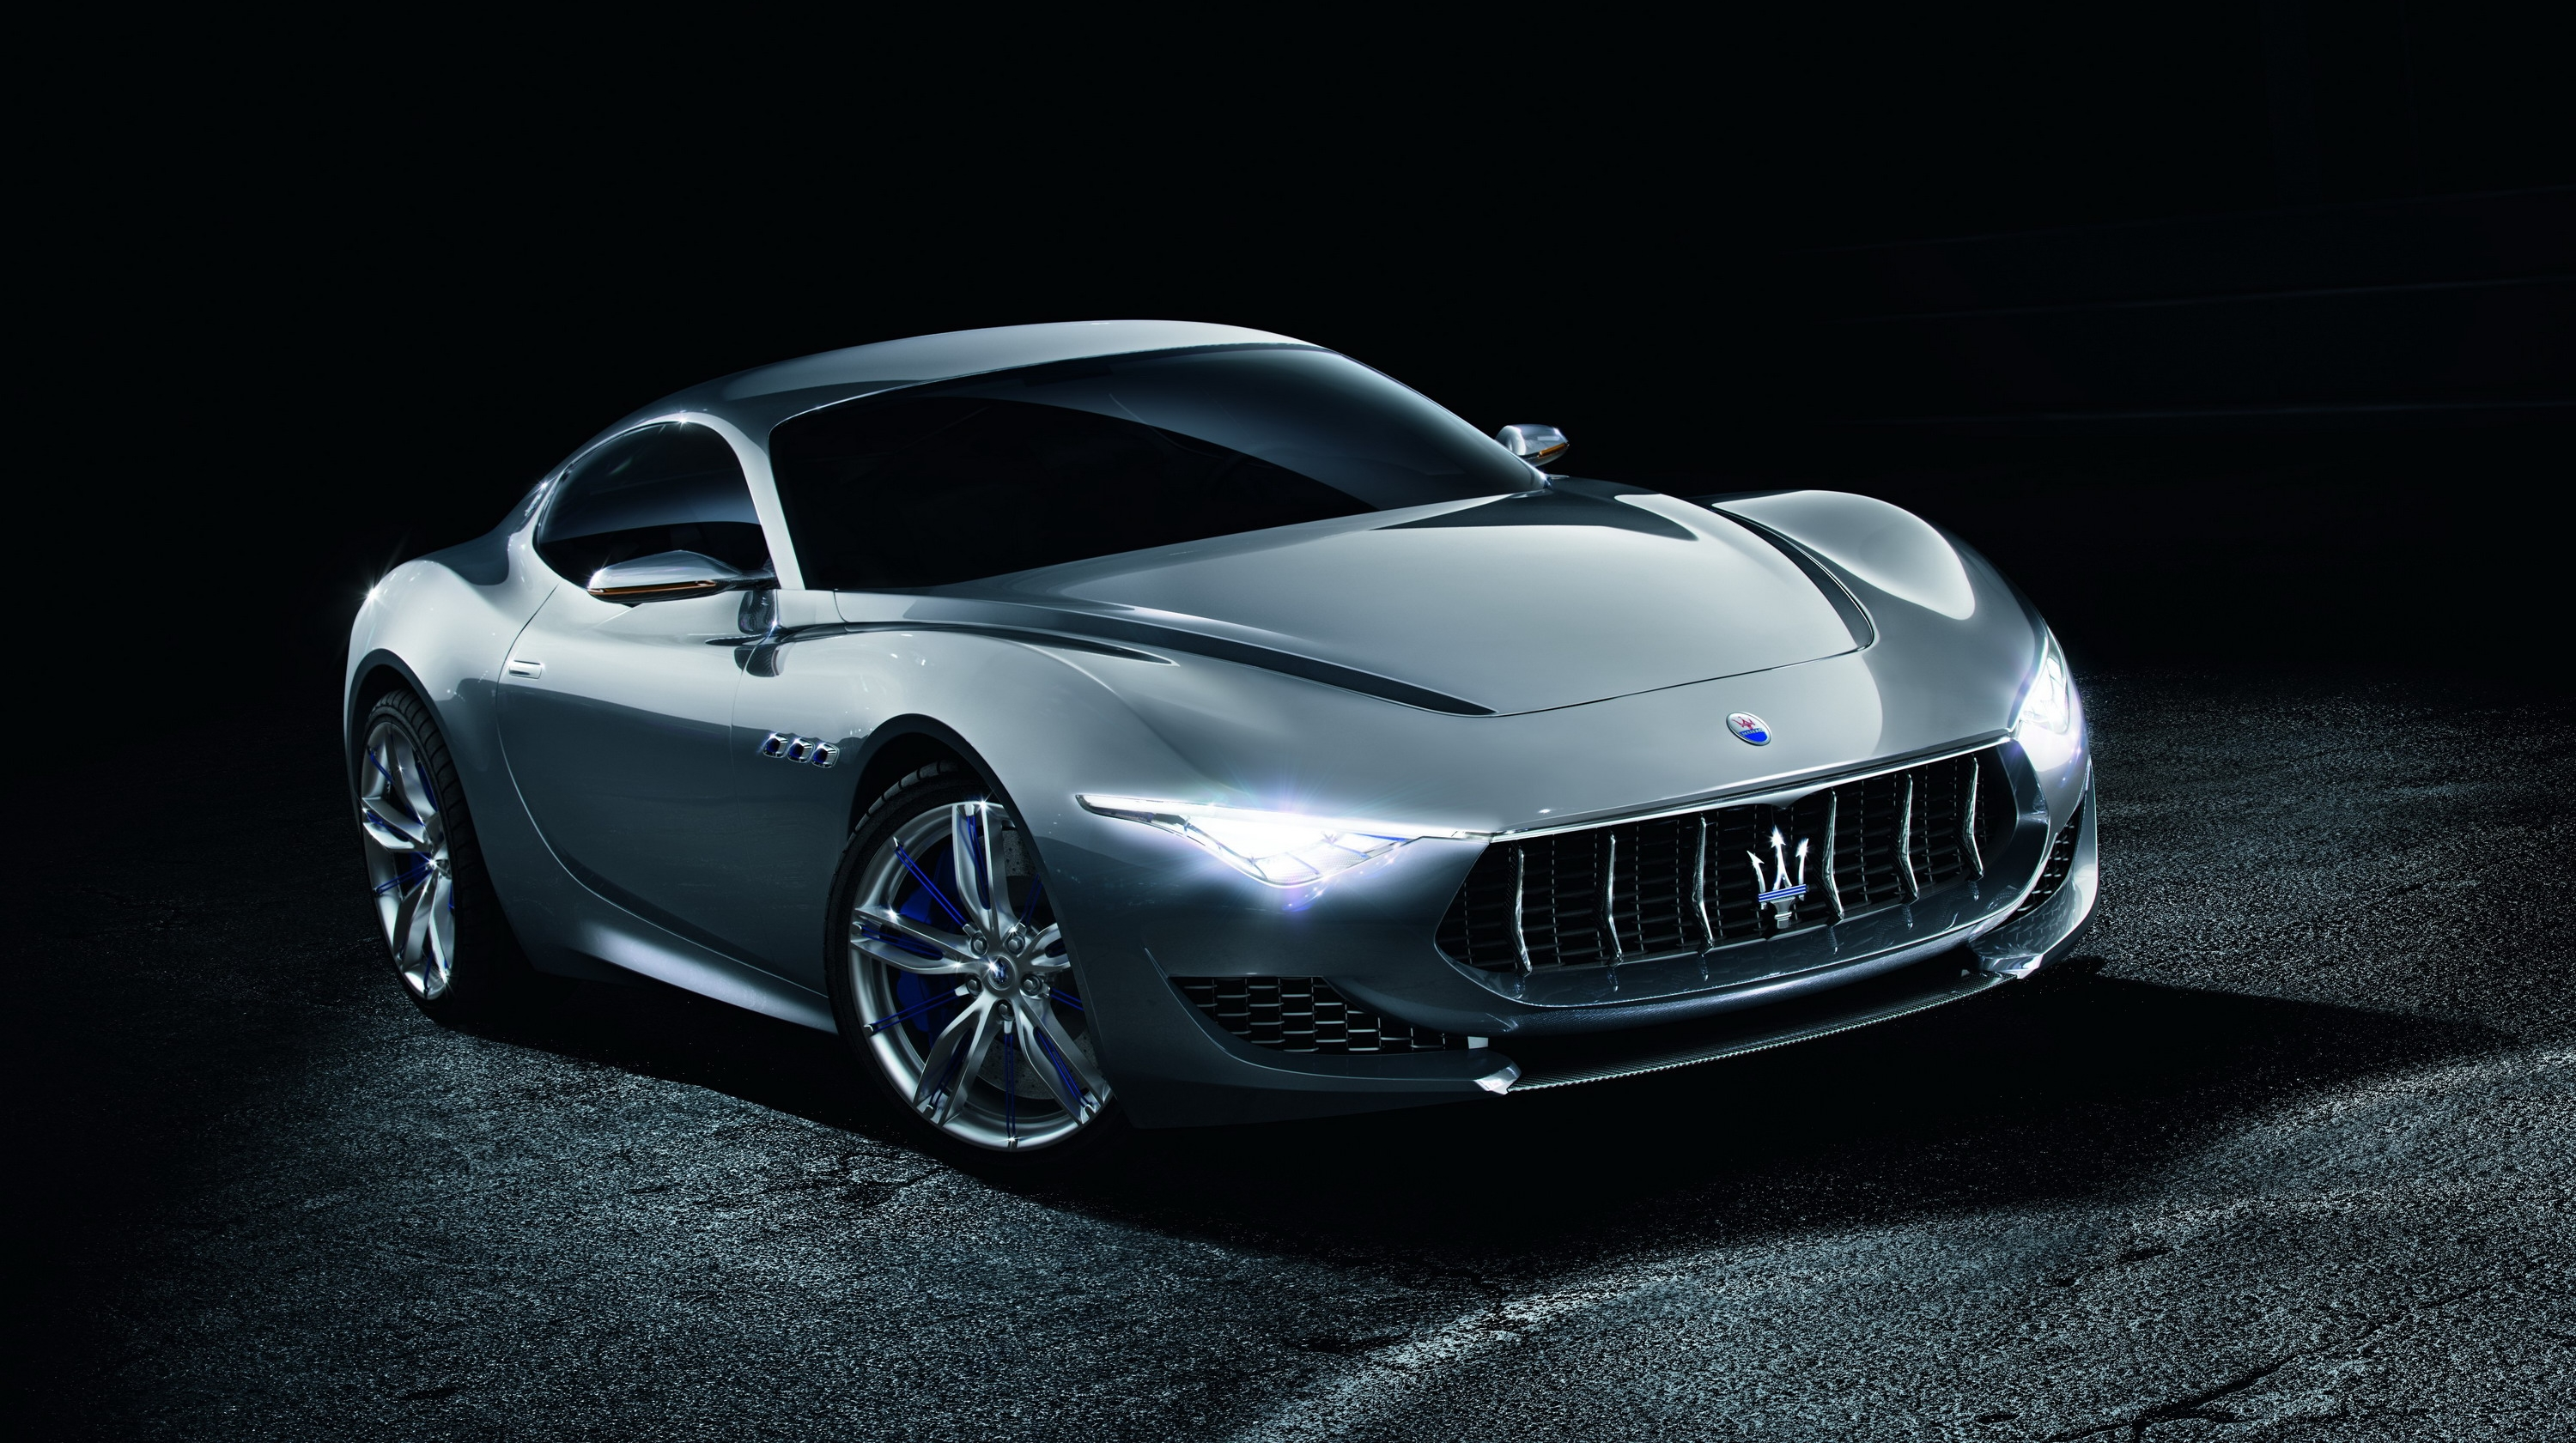 Amazing Fiat Chrysler Plans 20 New Models By 2016 News   Top Speed. »